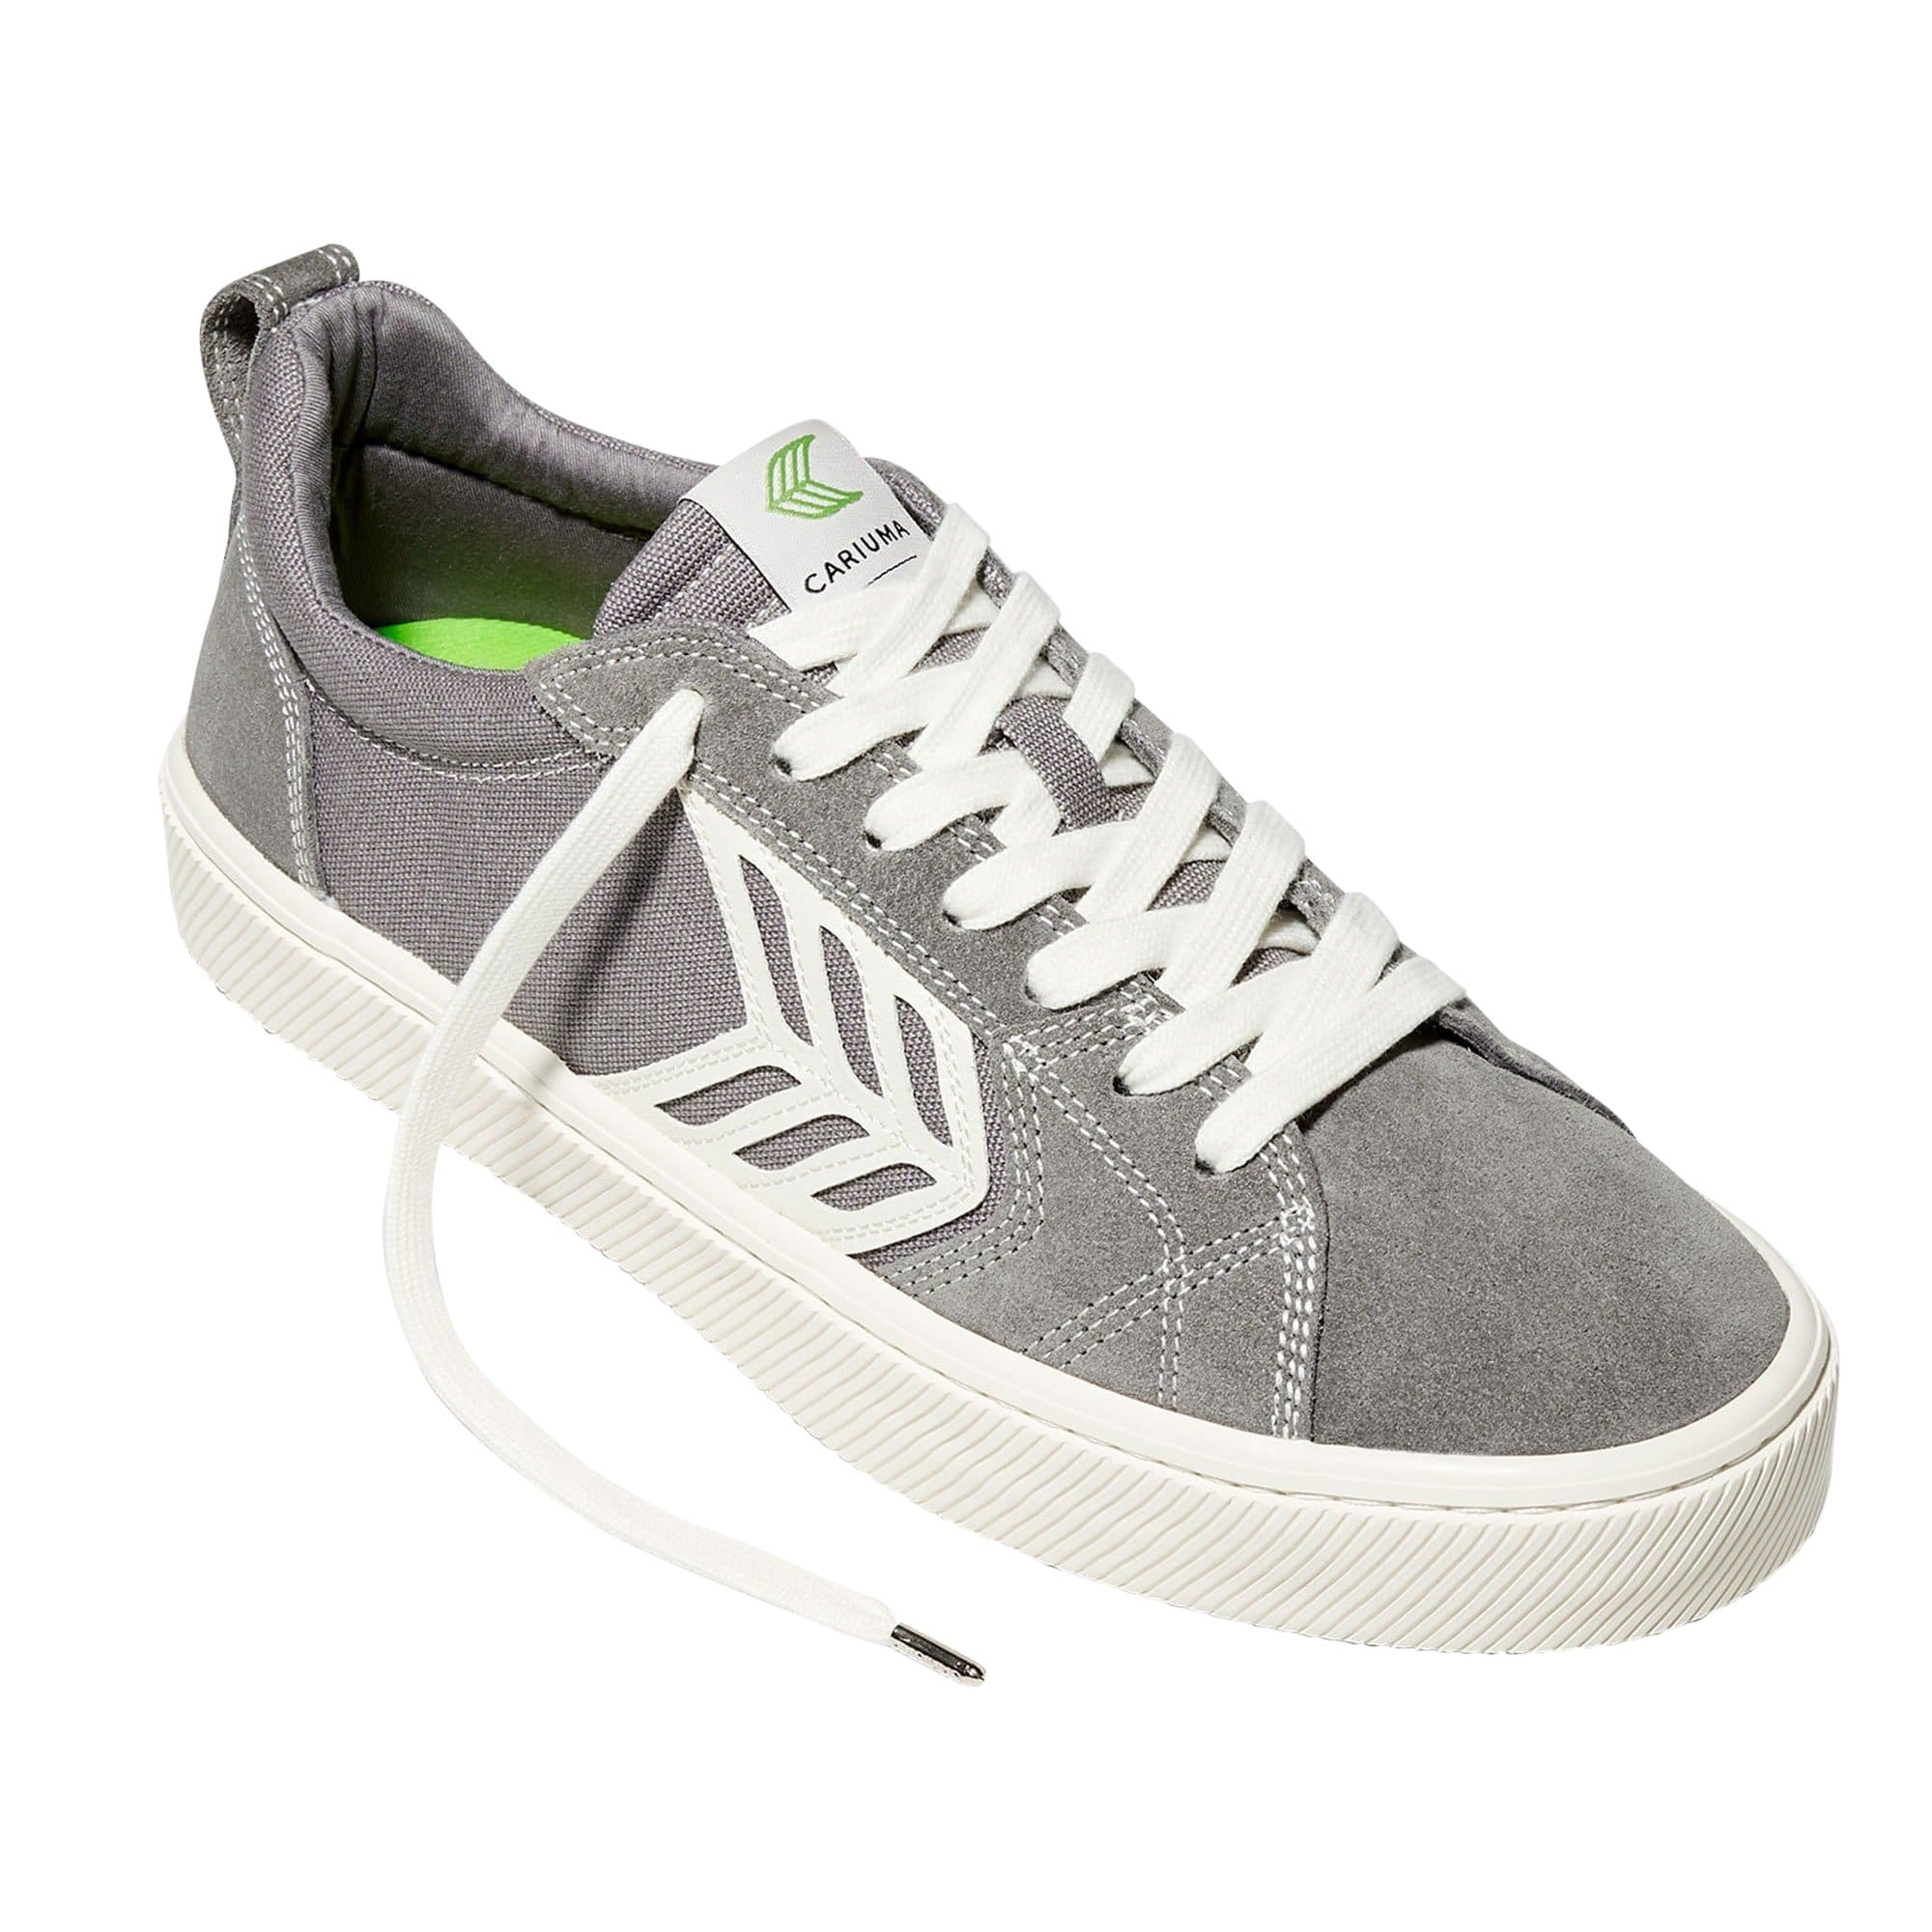 Cariuma Central Pte Ltd Footwear CATIBA PRO Skate Charcoal Grey Suede and Canvas Contrast Thread Ivory Logo Sneaker Men